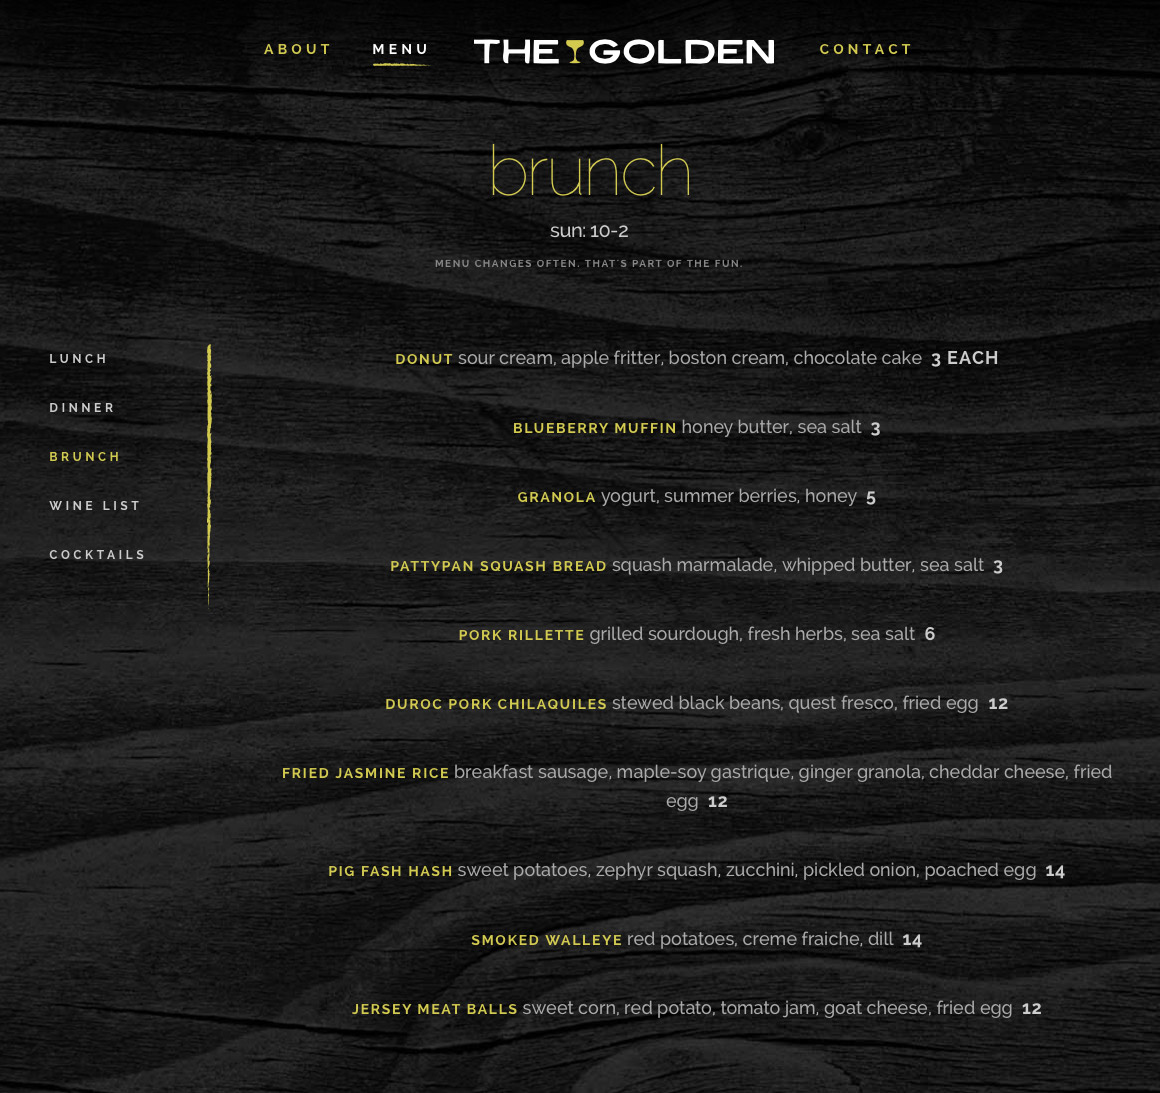 The Golden: Menu page